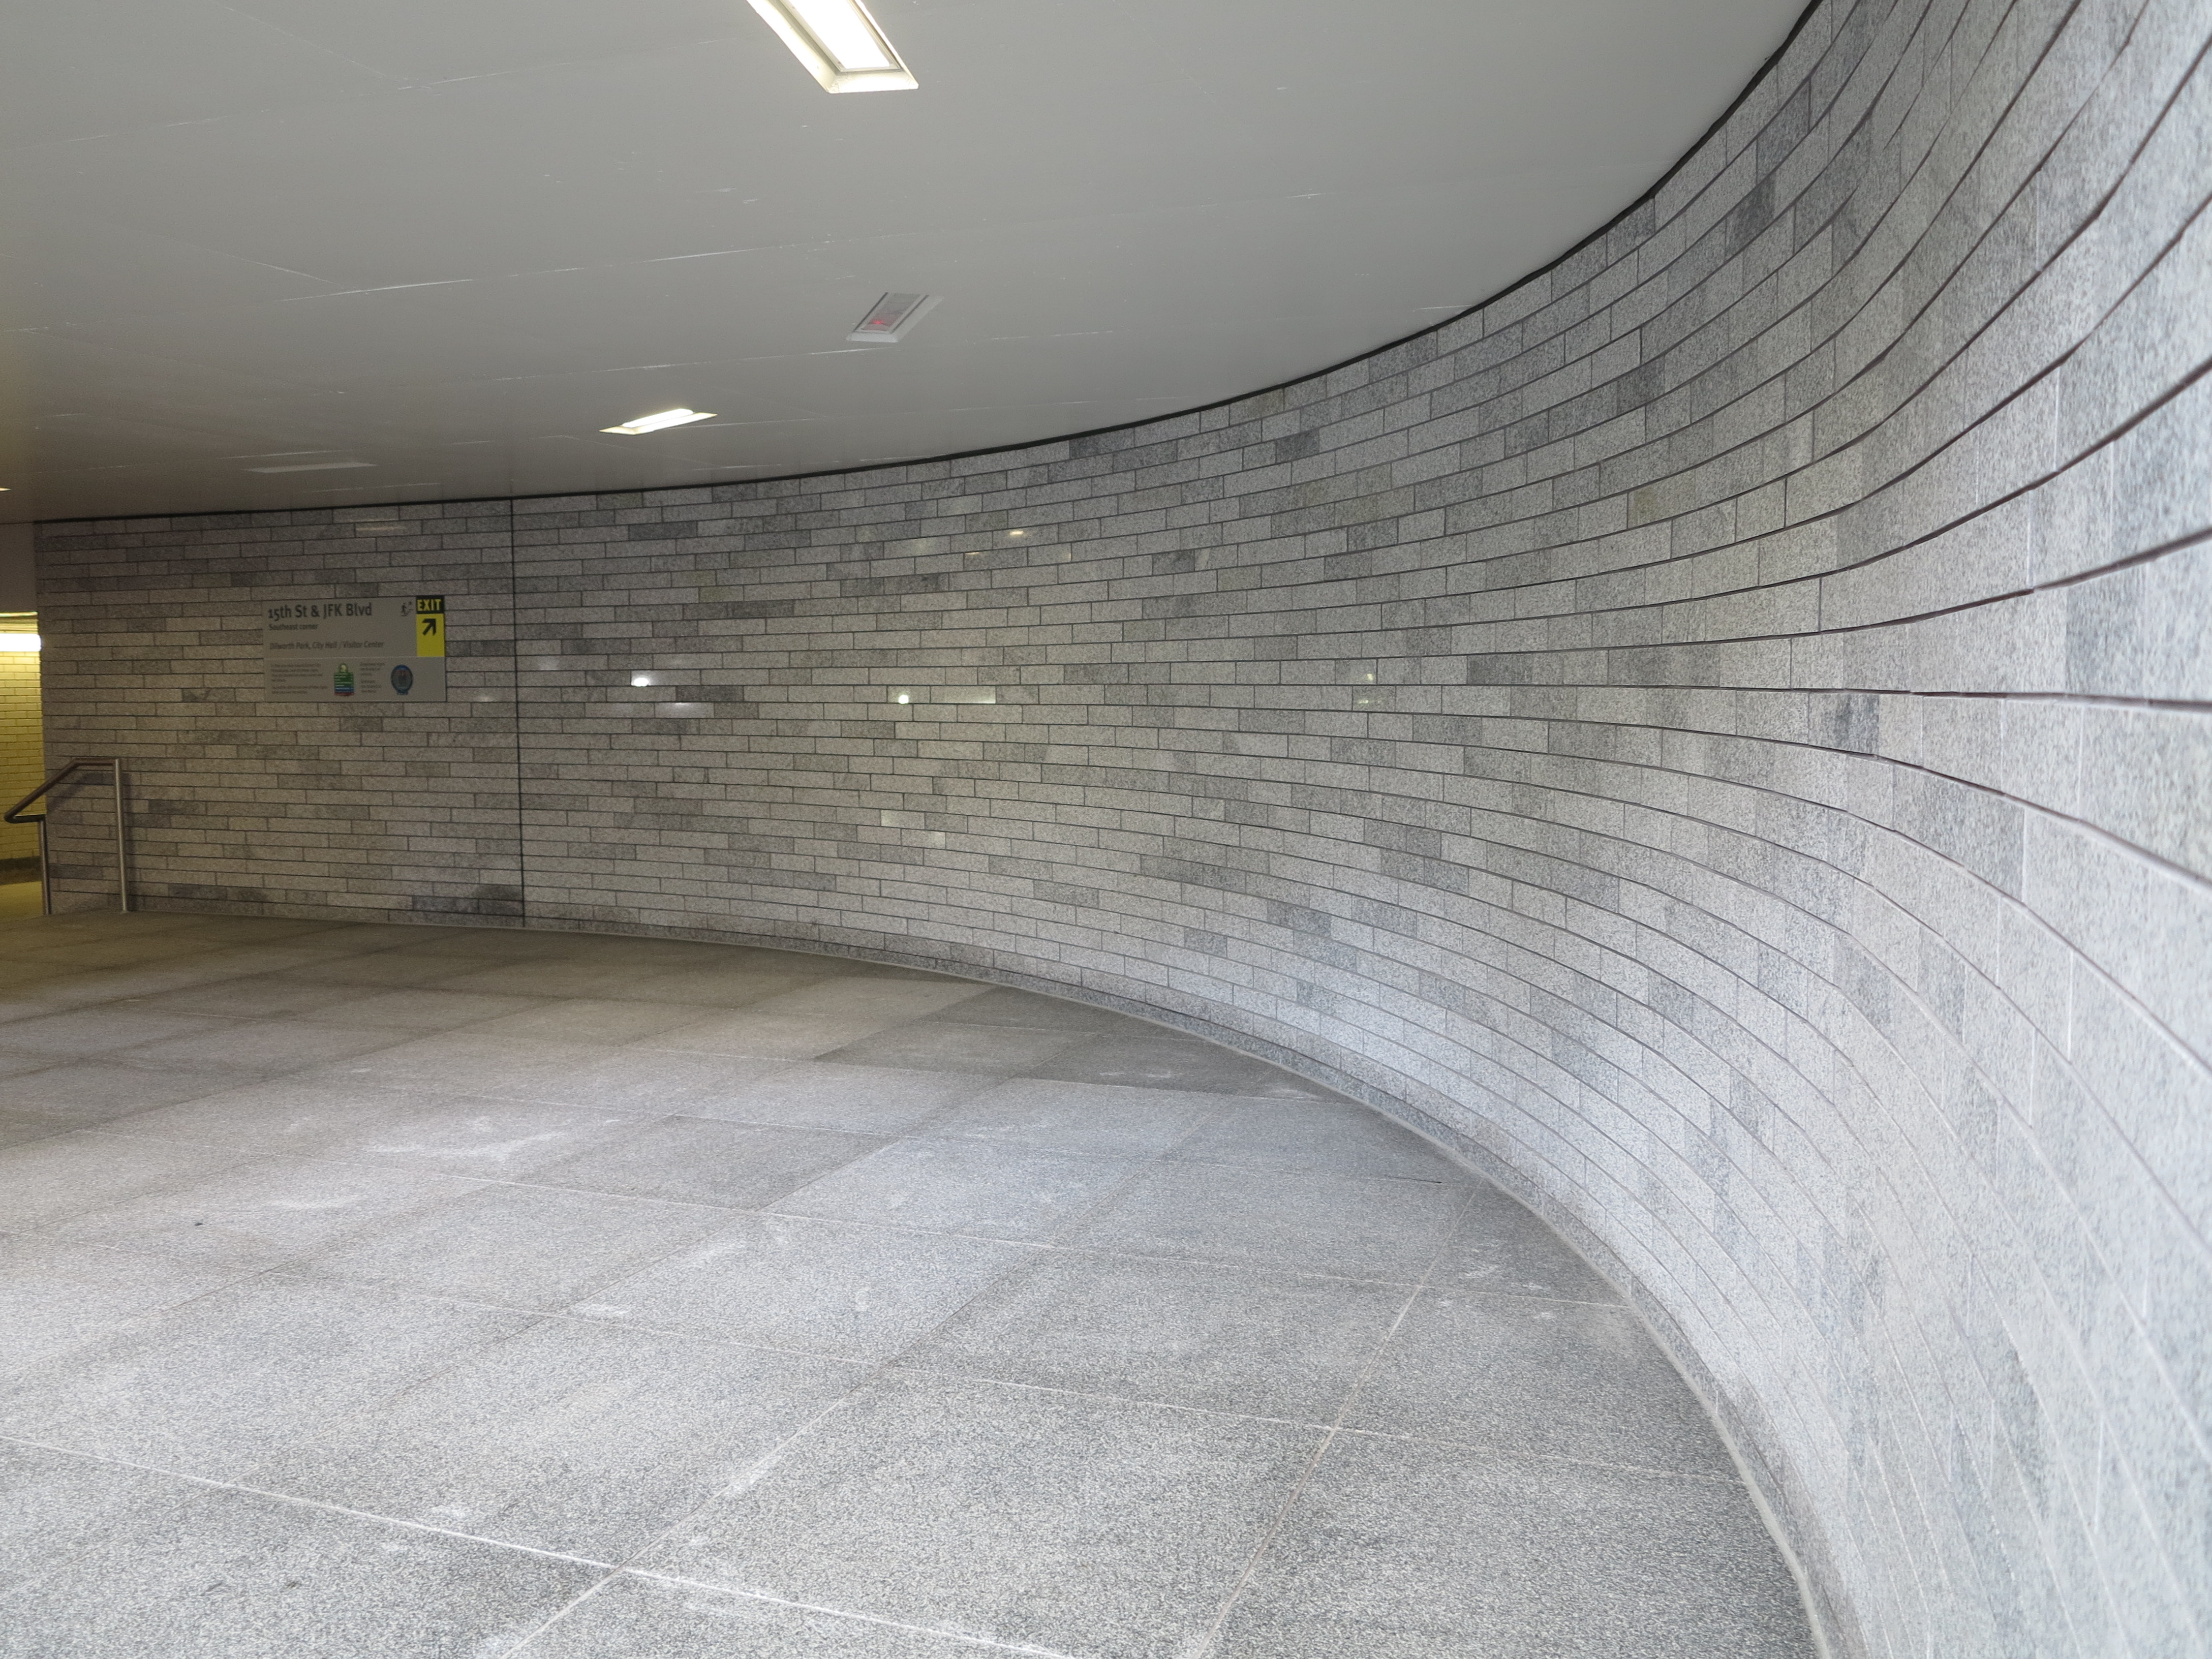 Polished granite walls, made of stone recycled from the old Dilworth Plaza